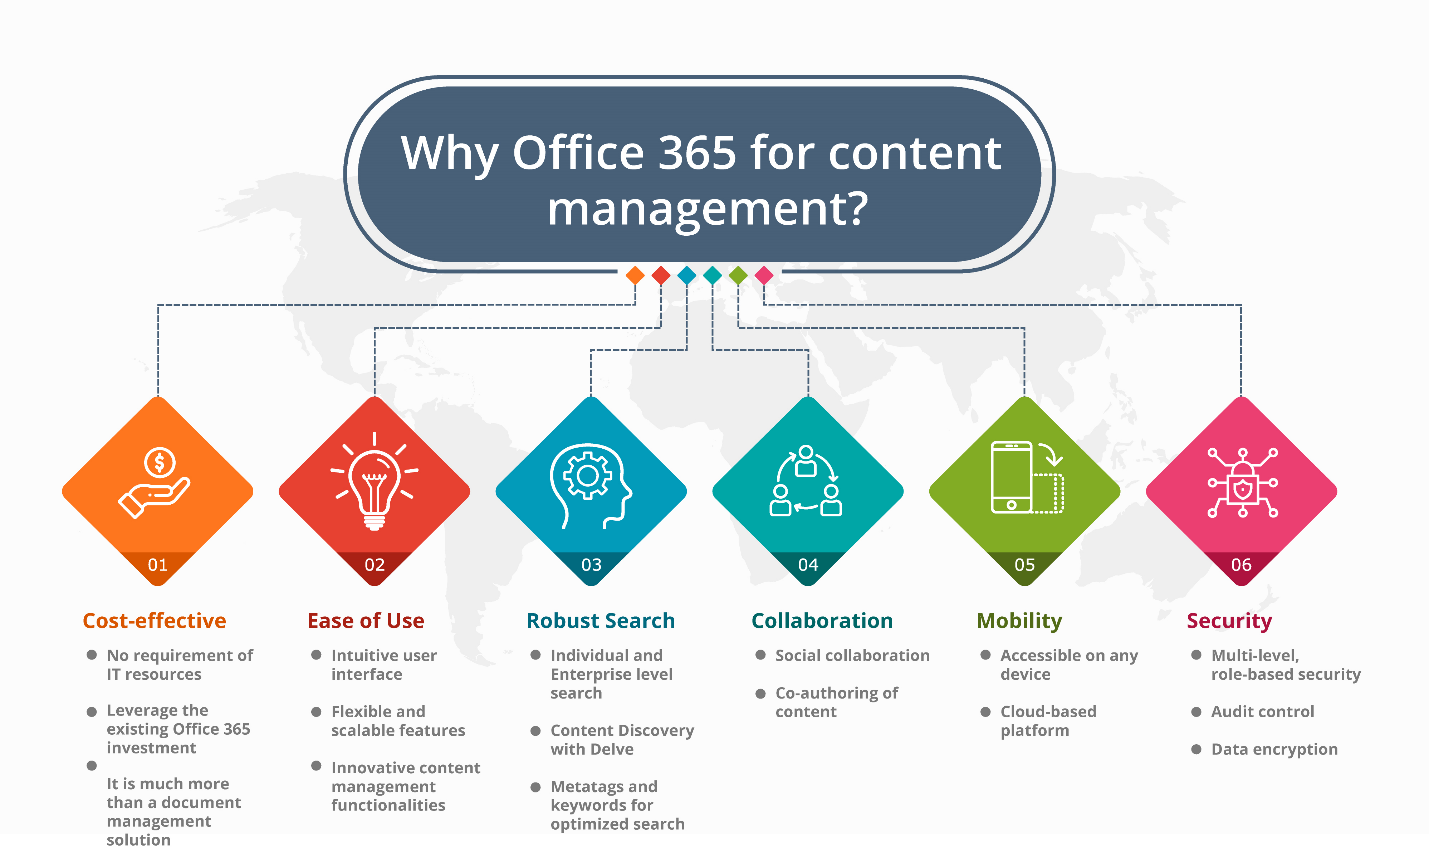 Why Office 365 For Content Management Enterprise Content Management Content Management Knowledge Management